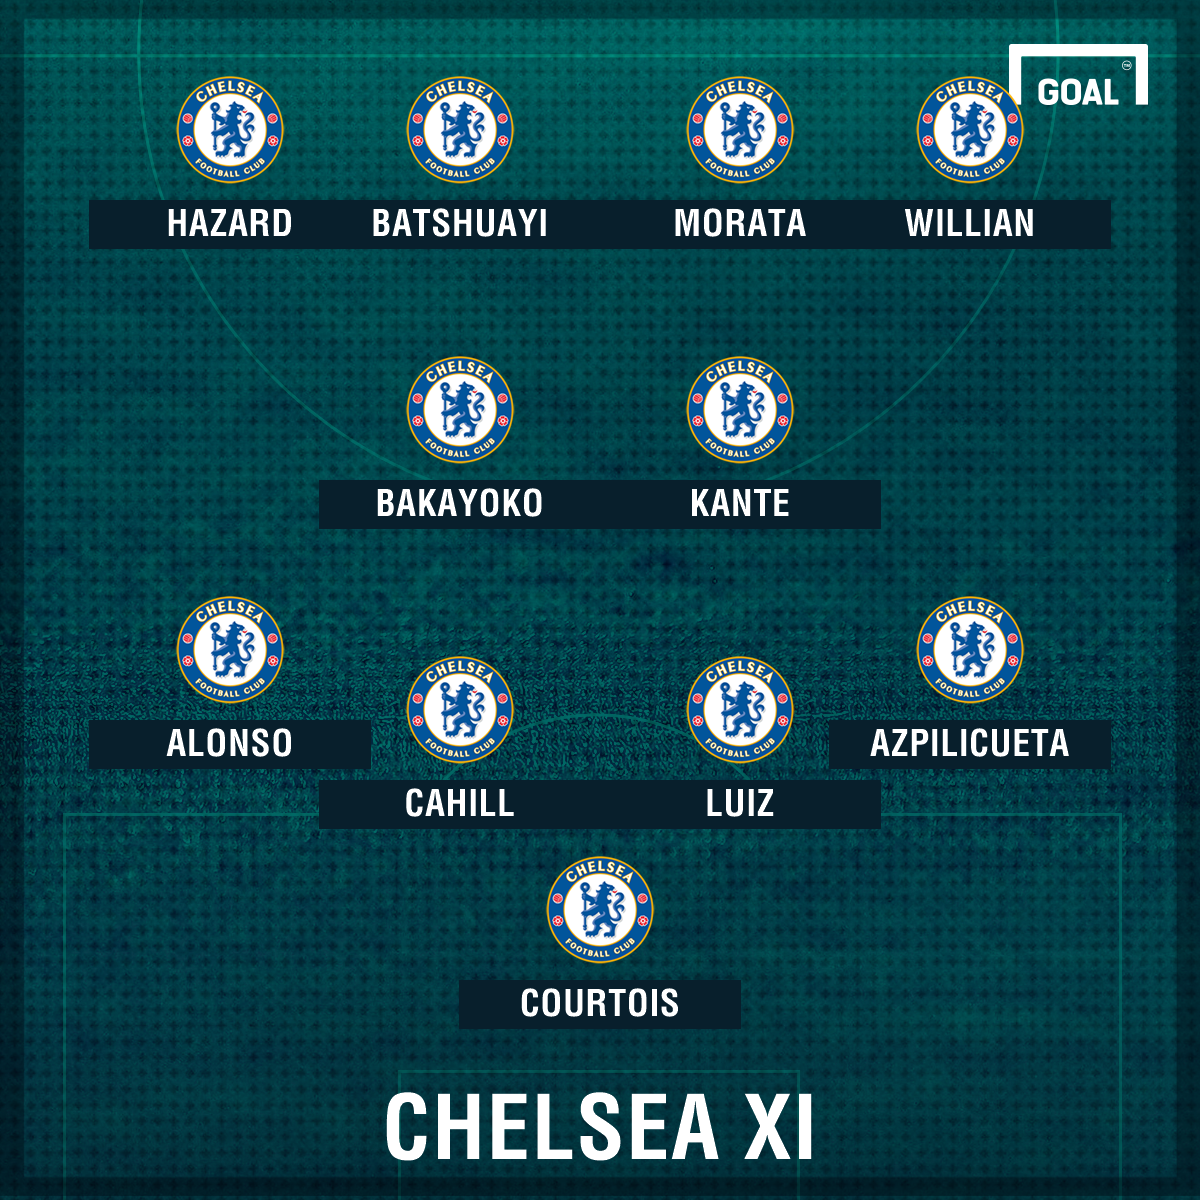 Chelsea line up with Morata